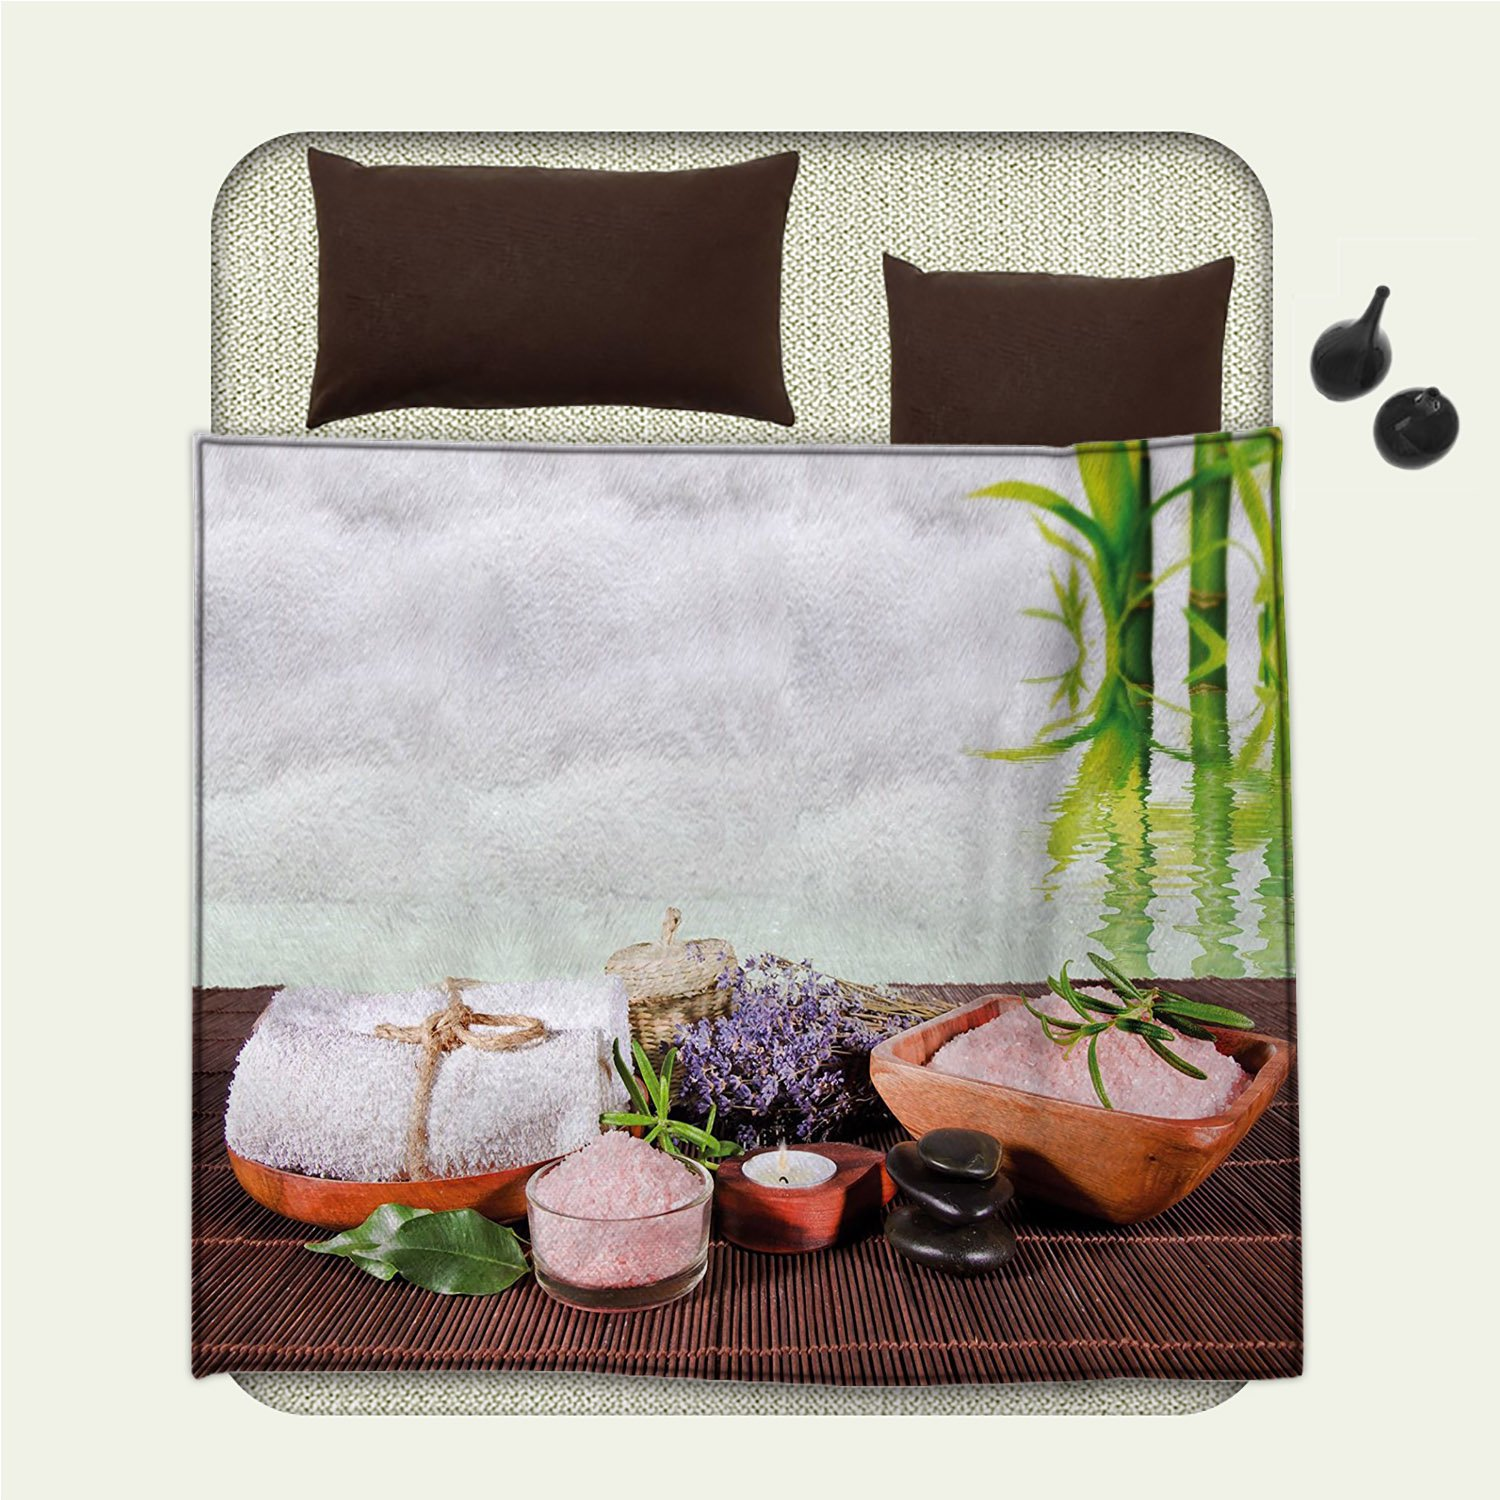 smallbeefly Spa travel blanket Bamboo Background with Towel Flowers Candled and Zen Hot Massage StonesFlannel blanket Green White and Brown